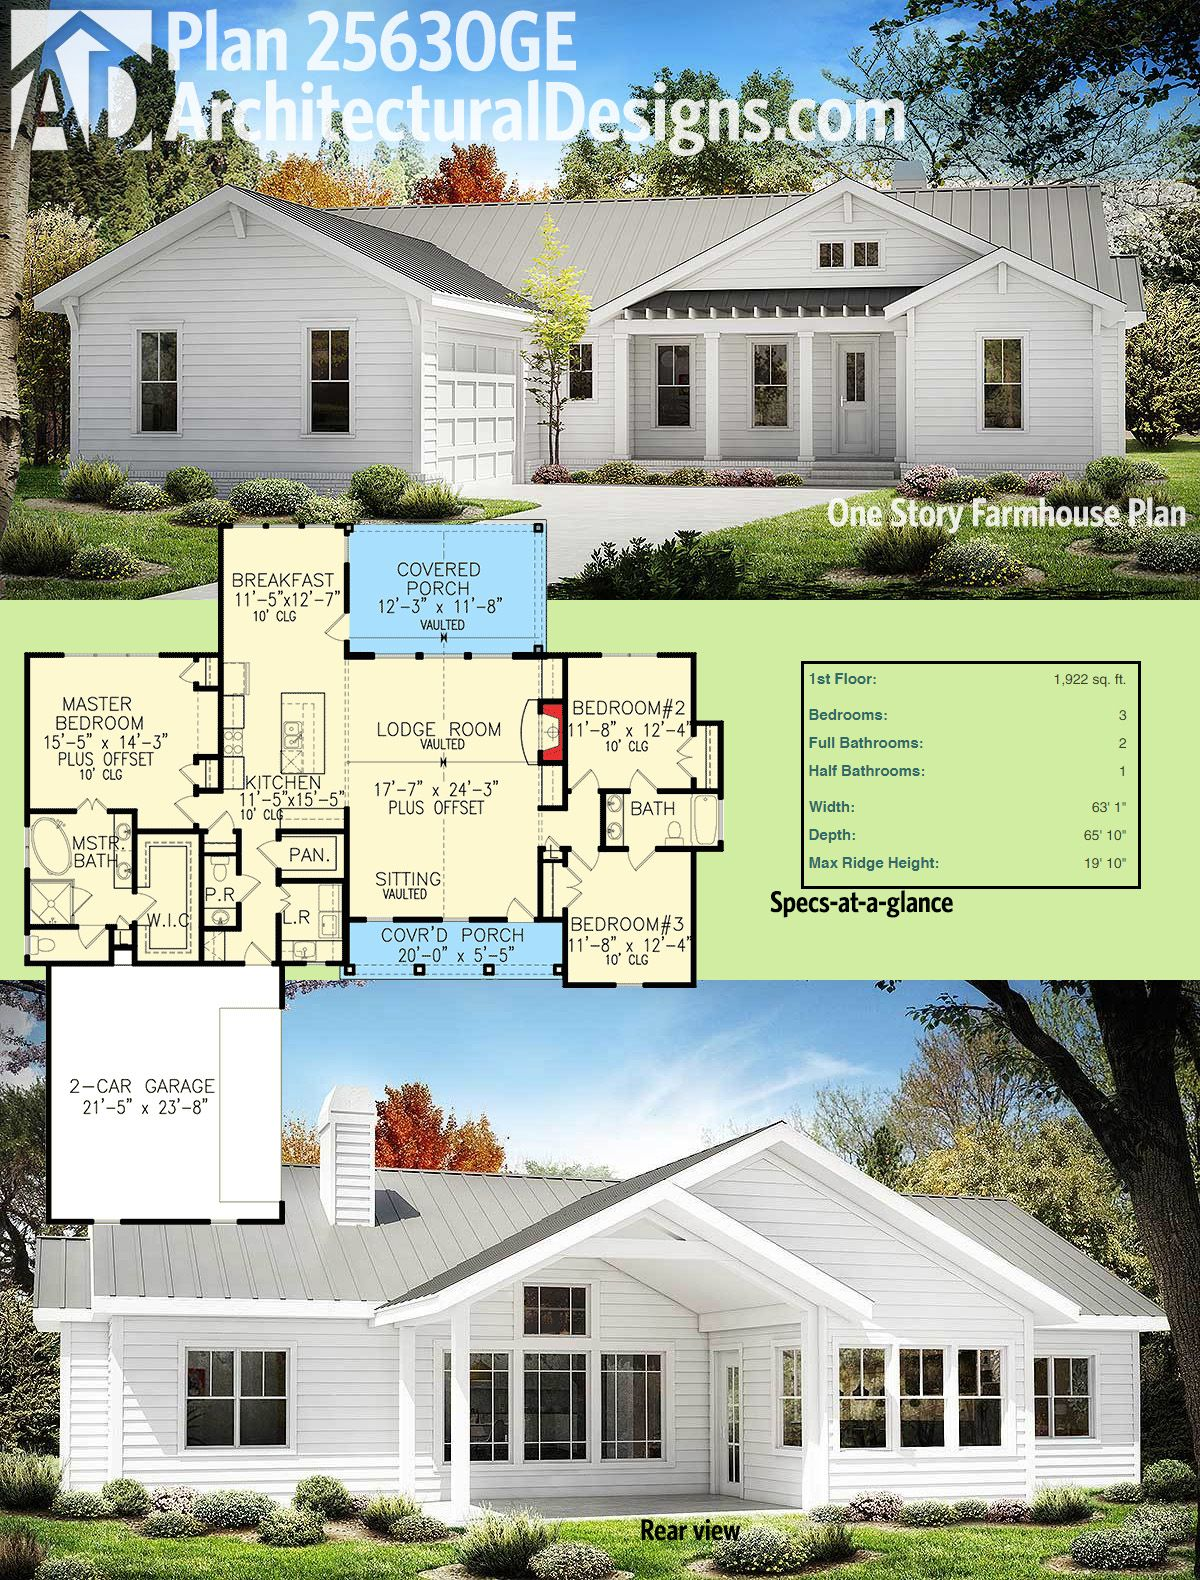 Architectural Designs One Story Modern Farmhouse Plan 25630GE gives     Architectural Designs One Story Modern Farmhouse Plan 25630GE gives you 3  beds and over 1 900 square feet of heated living  Ready when you are